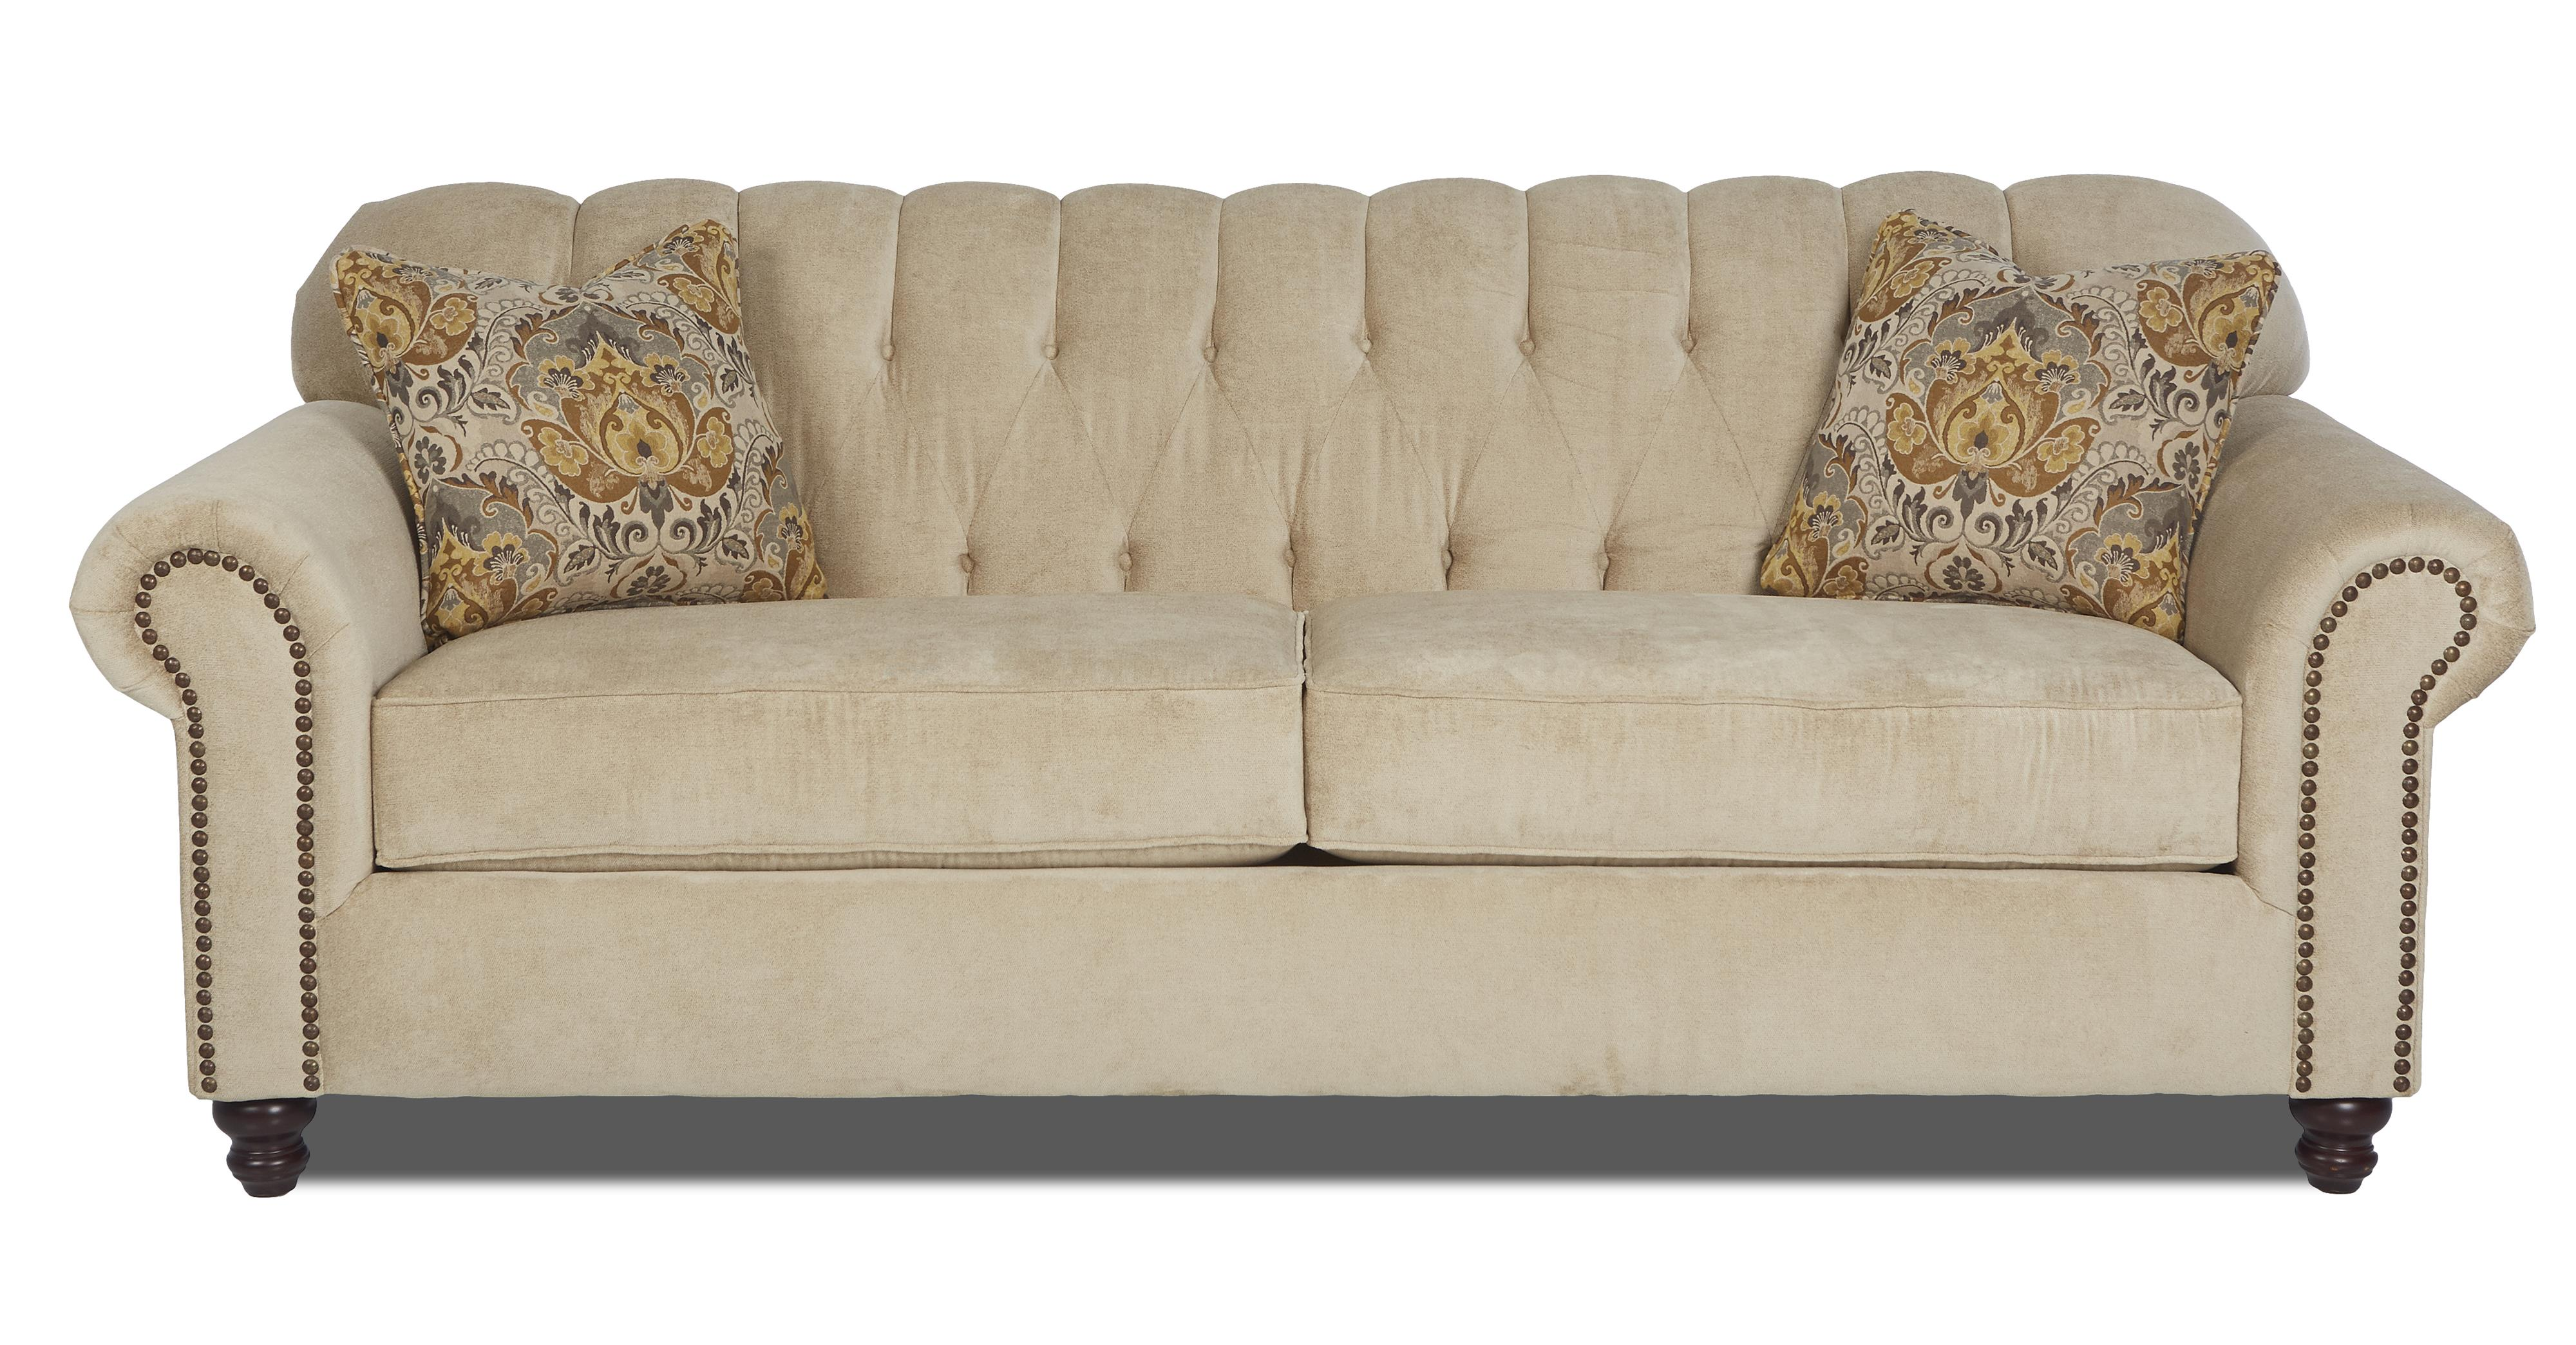 Klaussner Sinclair Traditional Stationary Sofa With Rolled Arms And Nailhead Trim Value City